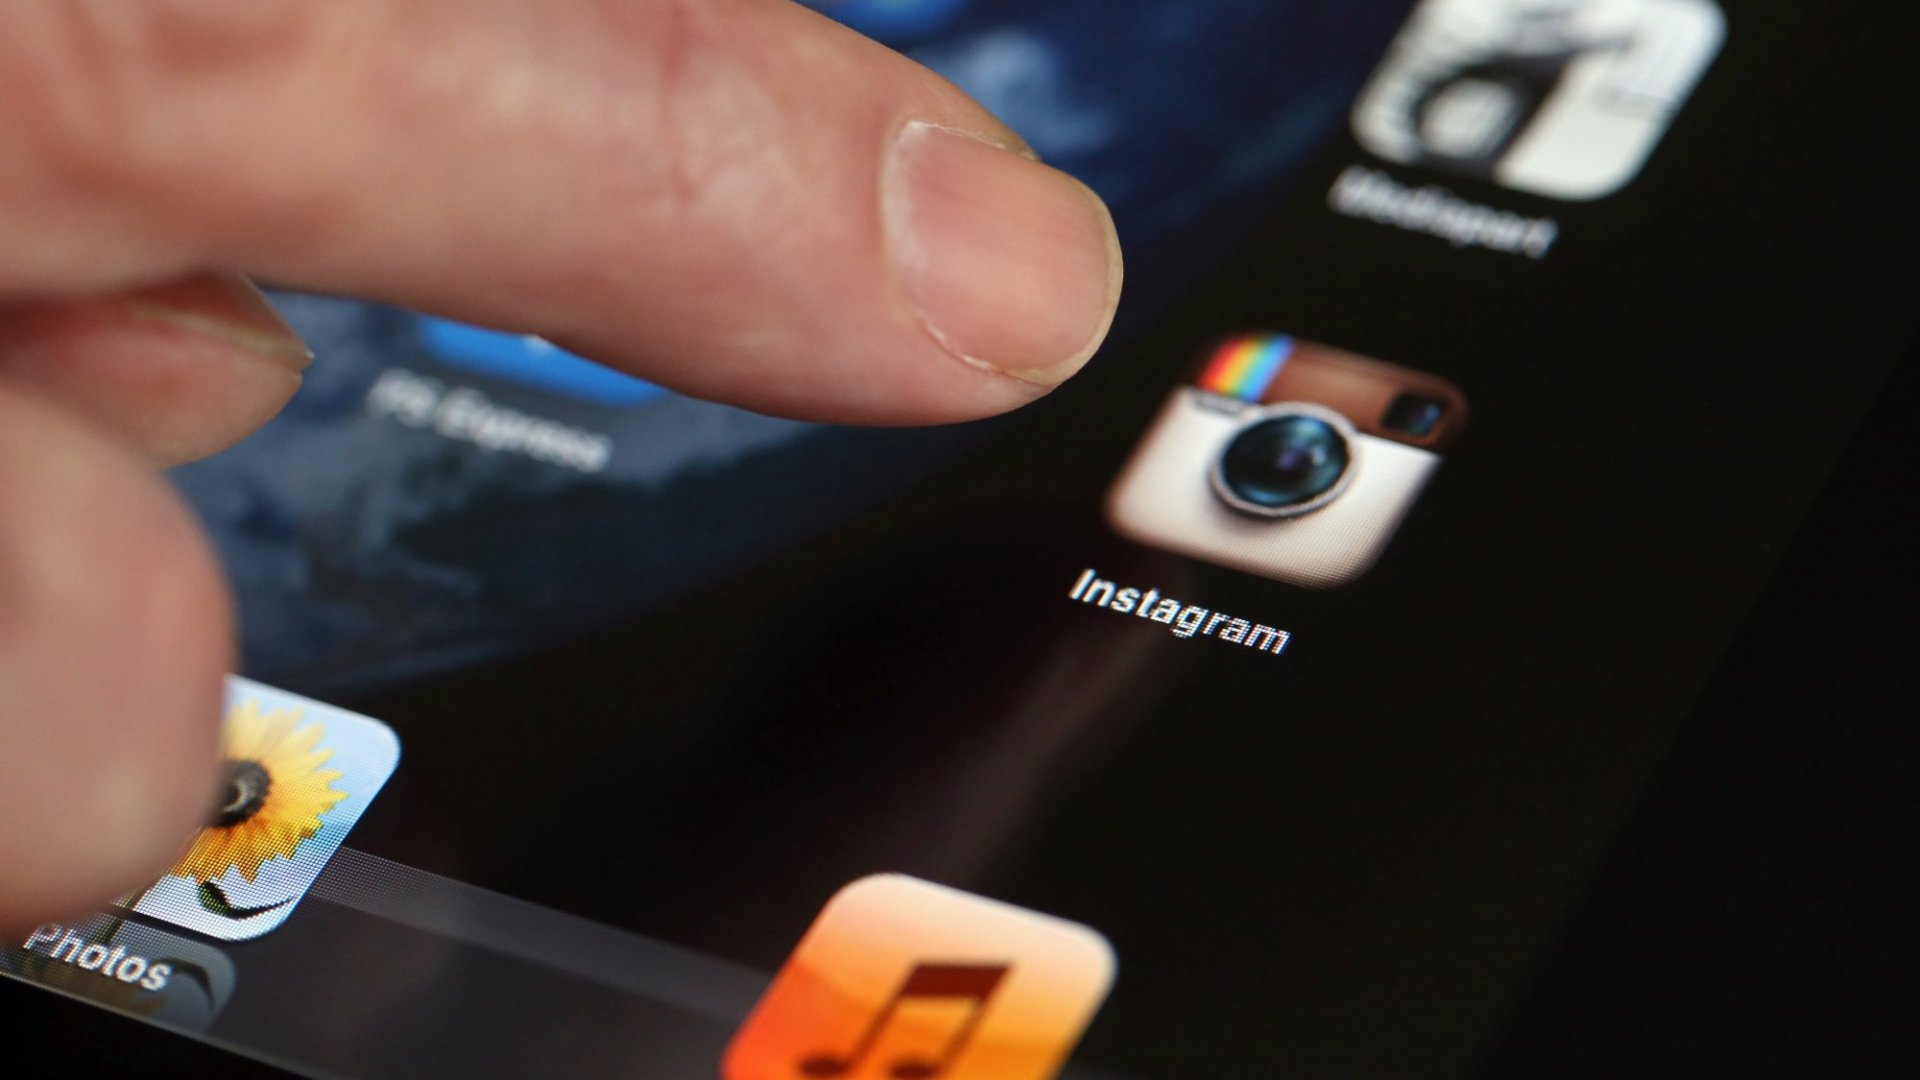 5 Instagram Tips Every Small-Business Owner Needs to Know